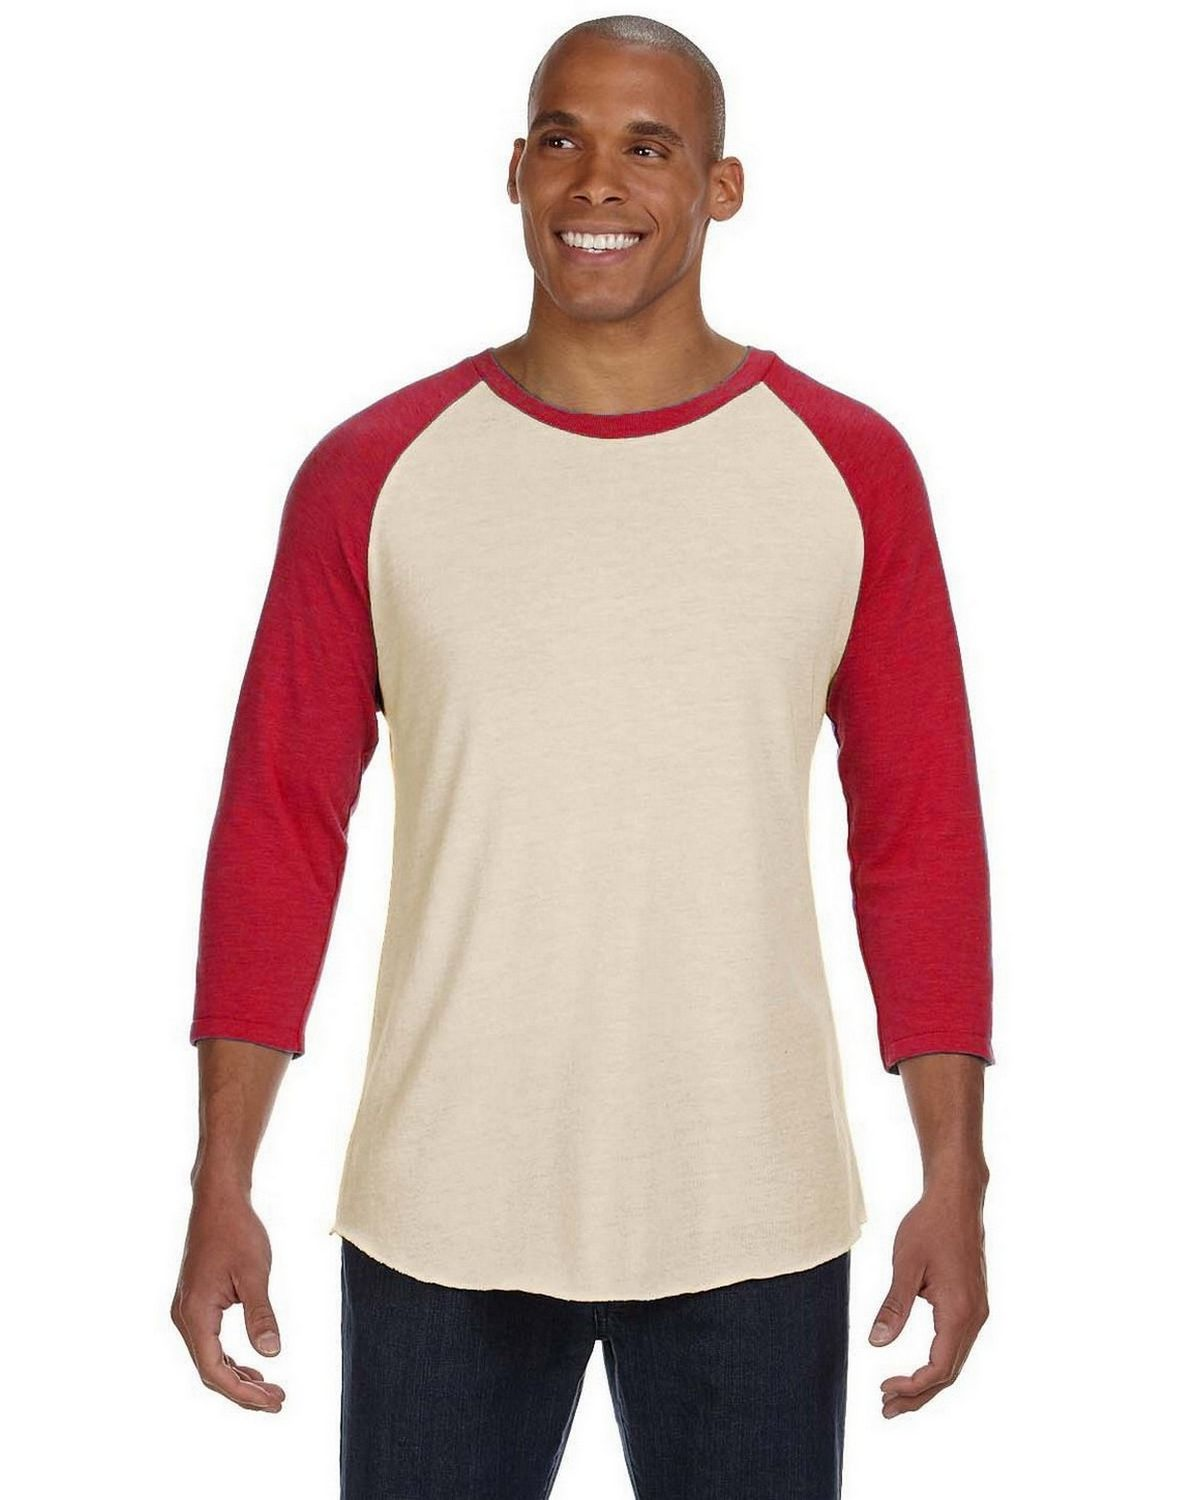 Alternative AA2089 Fashion Now Mens Printed Baseball Tee - Eco True Red - XL AA2089